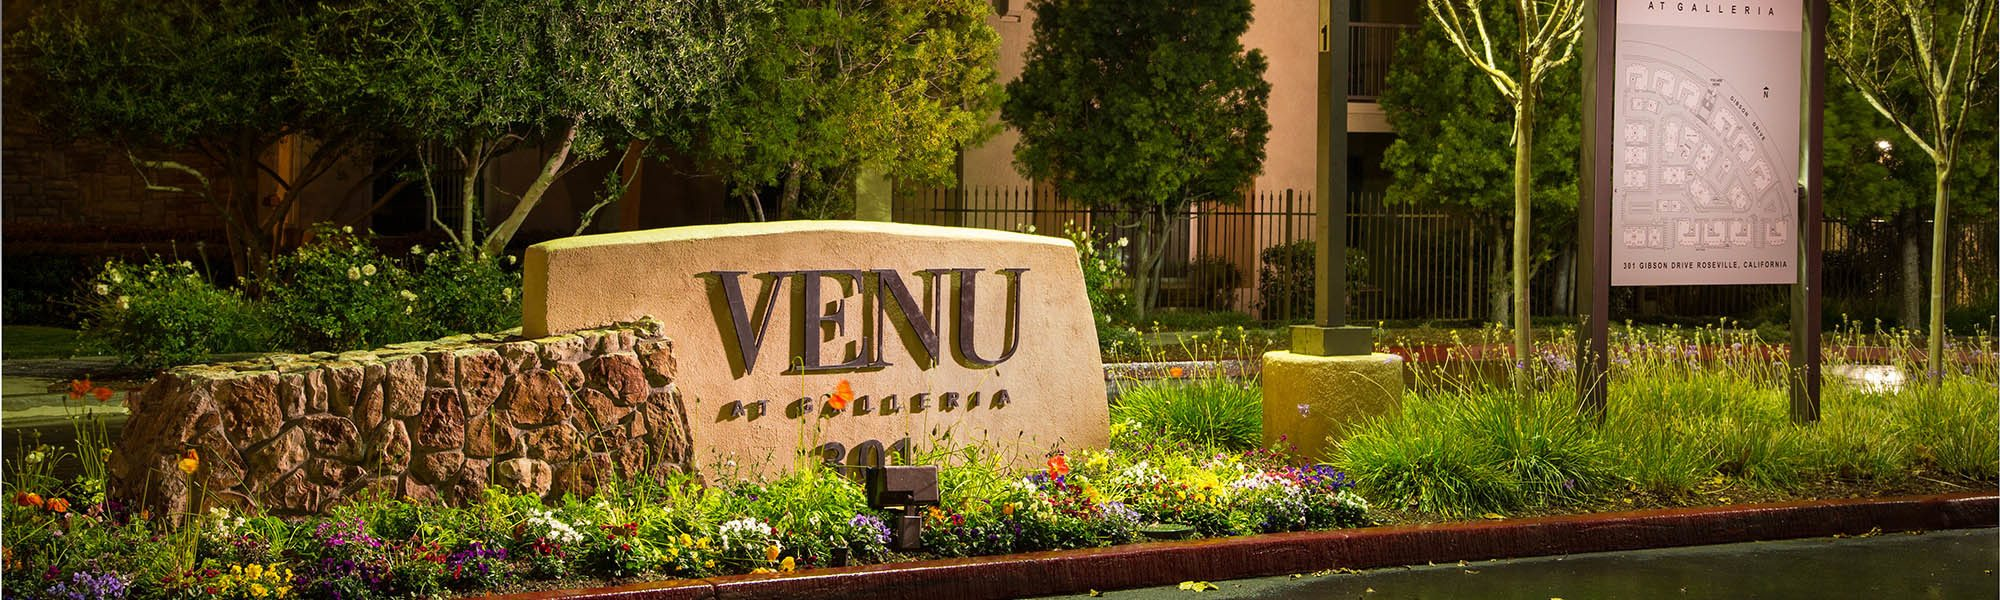 Learn about our neighborhood at Venu at Galleria Condominium Rentals in Roseville, CA on our website